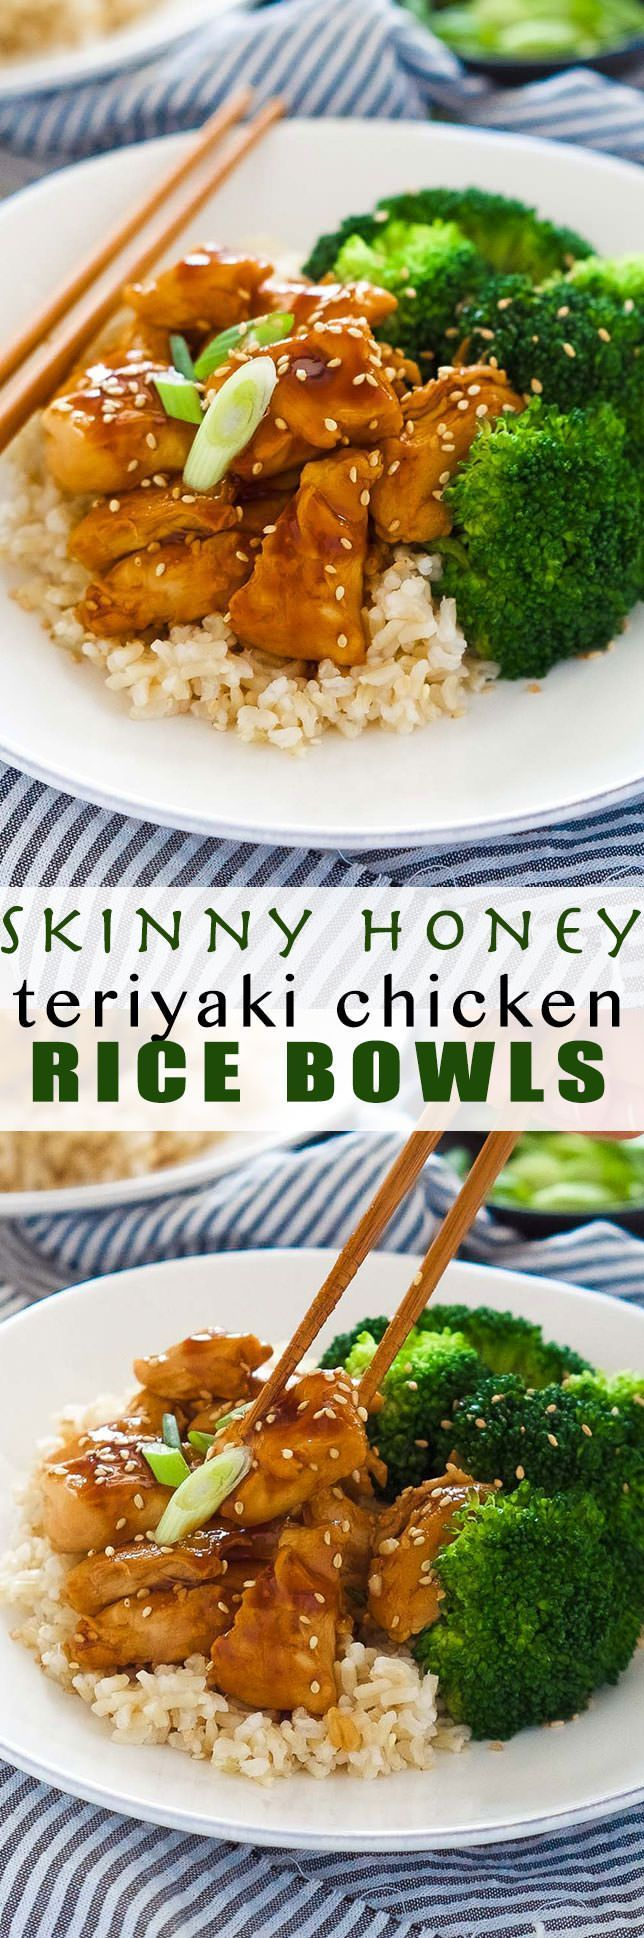 These delicious Skinny Honey Teriyaki Chicken Rice Bowls are a super quick dinner! Tender chicken is sauteed until juicy and simmered in a homemade, healthy teriyaki sauce. Served with fresh veggies and rice, you will forget all about takeout! (Quick Diet Clean Eating)